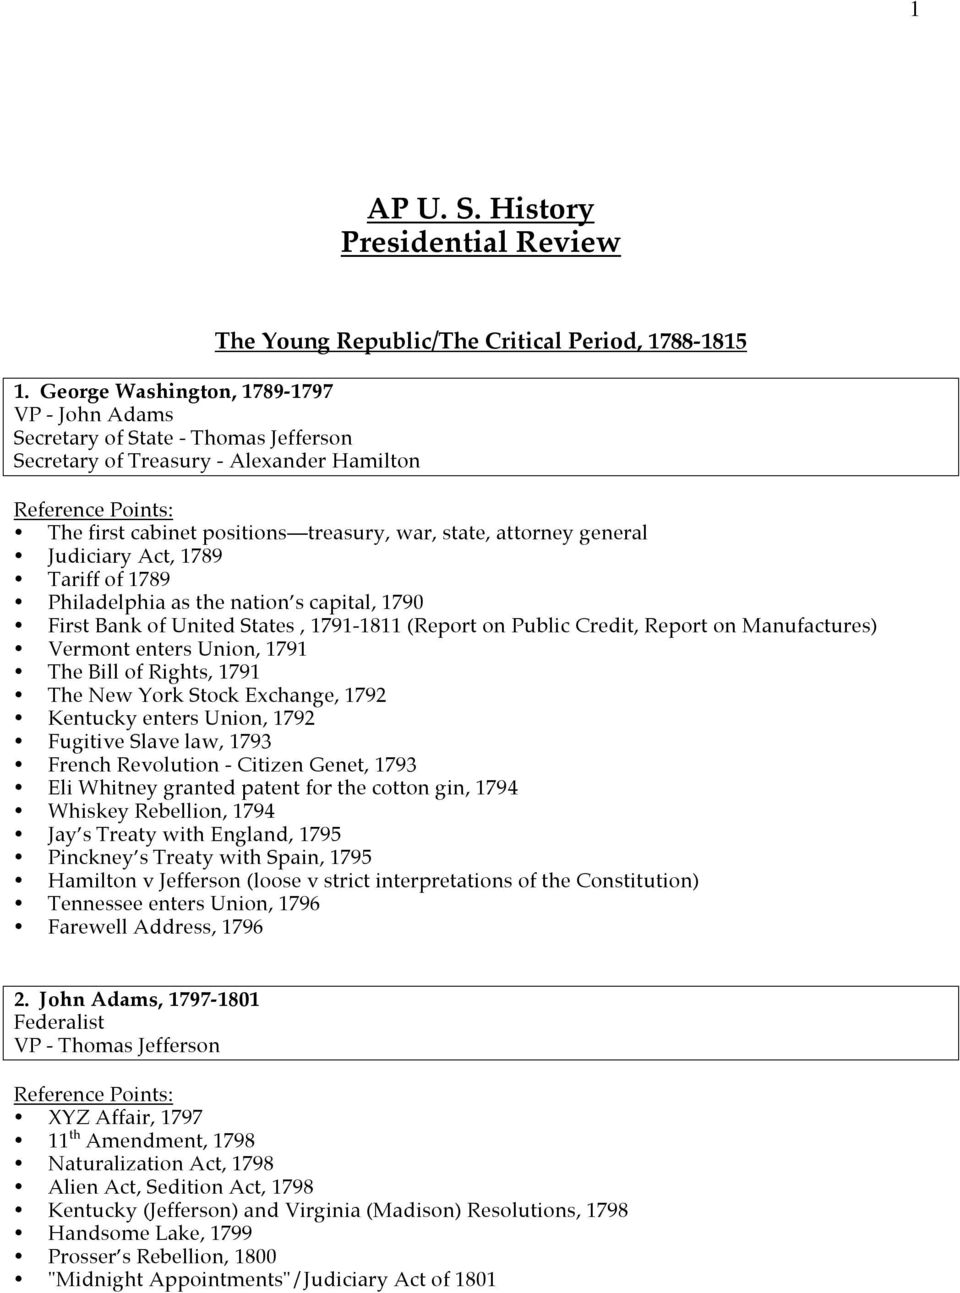 Judiciary Act, 1789 Tariff of 1789 Philadelphia as the nation s capital, 1790 First Bank of United States, 1791-1811 (Report on Public Credit, Report on Manufactures) Vermont enters Union, 1791 The